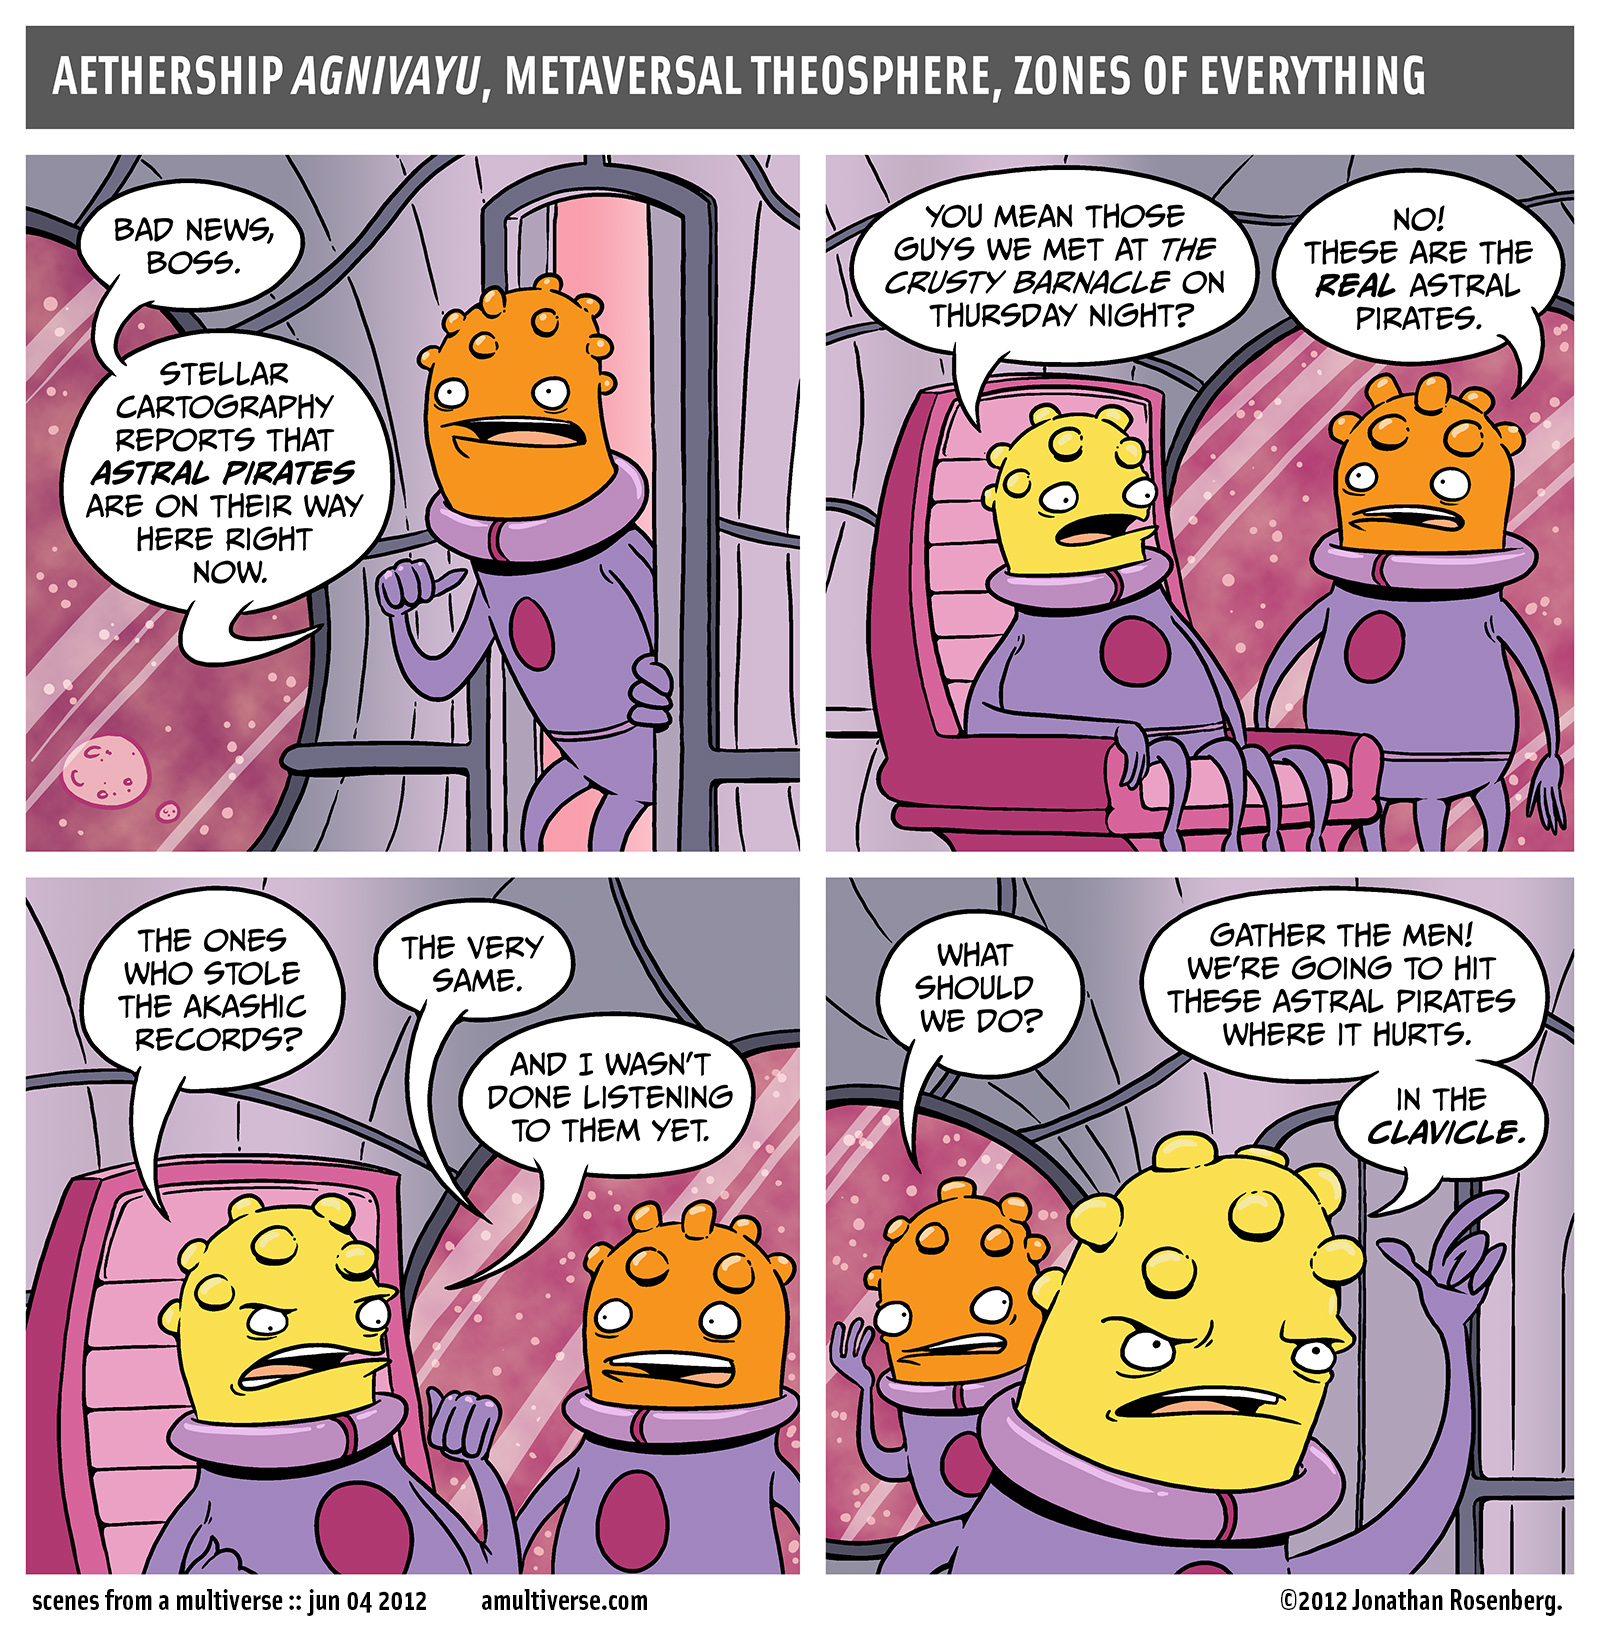 astral piracy is up 200% this year and is now the number one cause of hemorrhoids in the multiverse